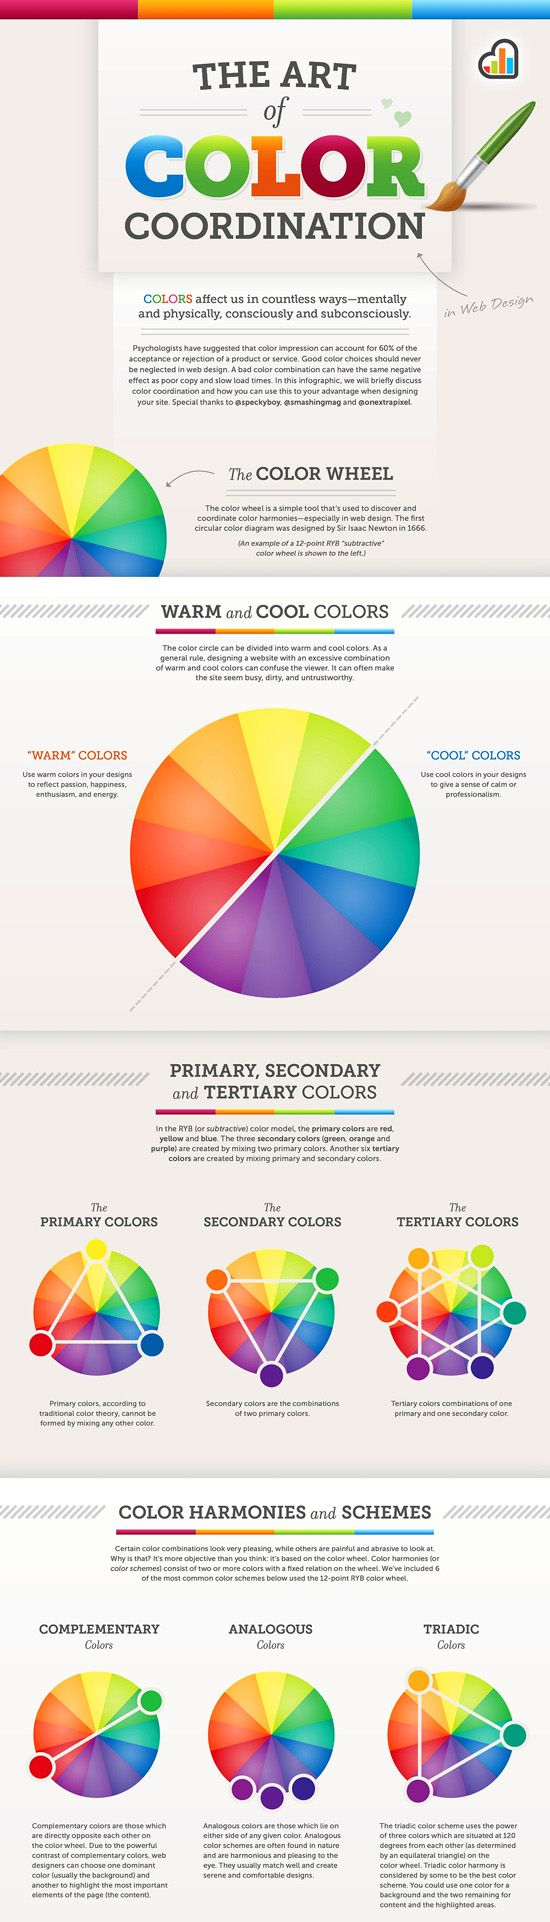 Color Coordination is important in design because it will really give off the right impression for the right situation if used correctly.